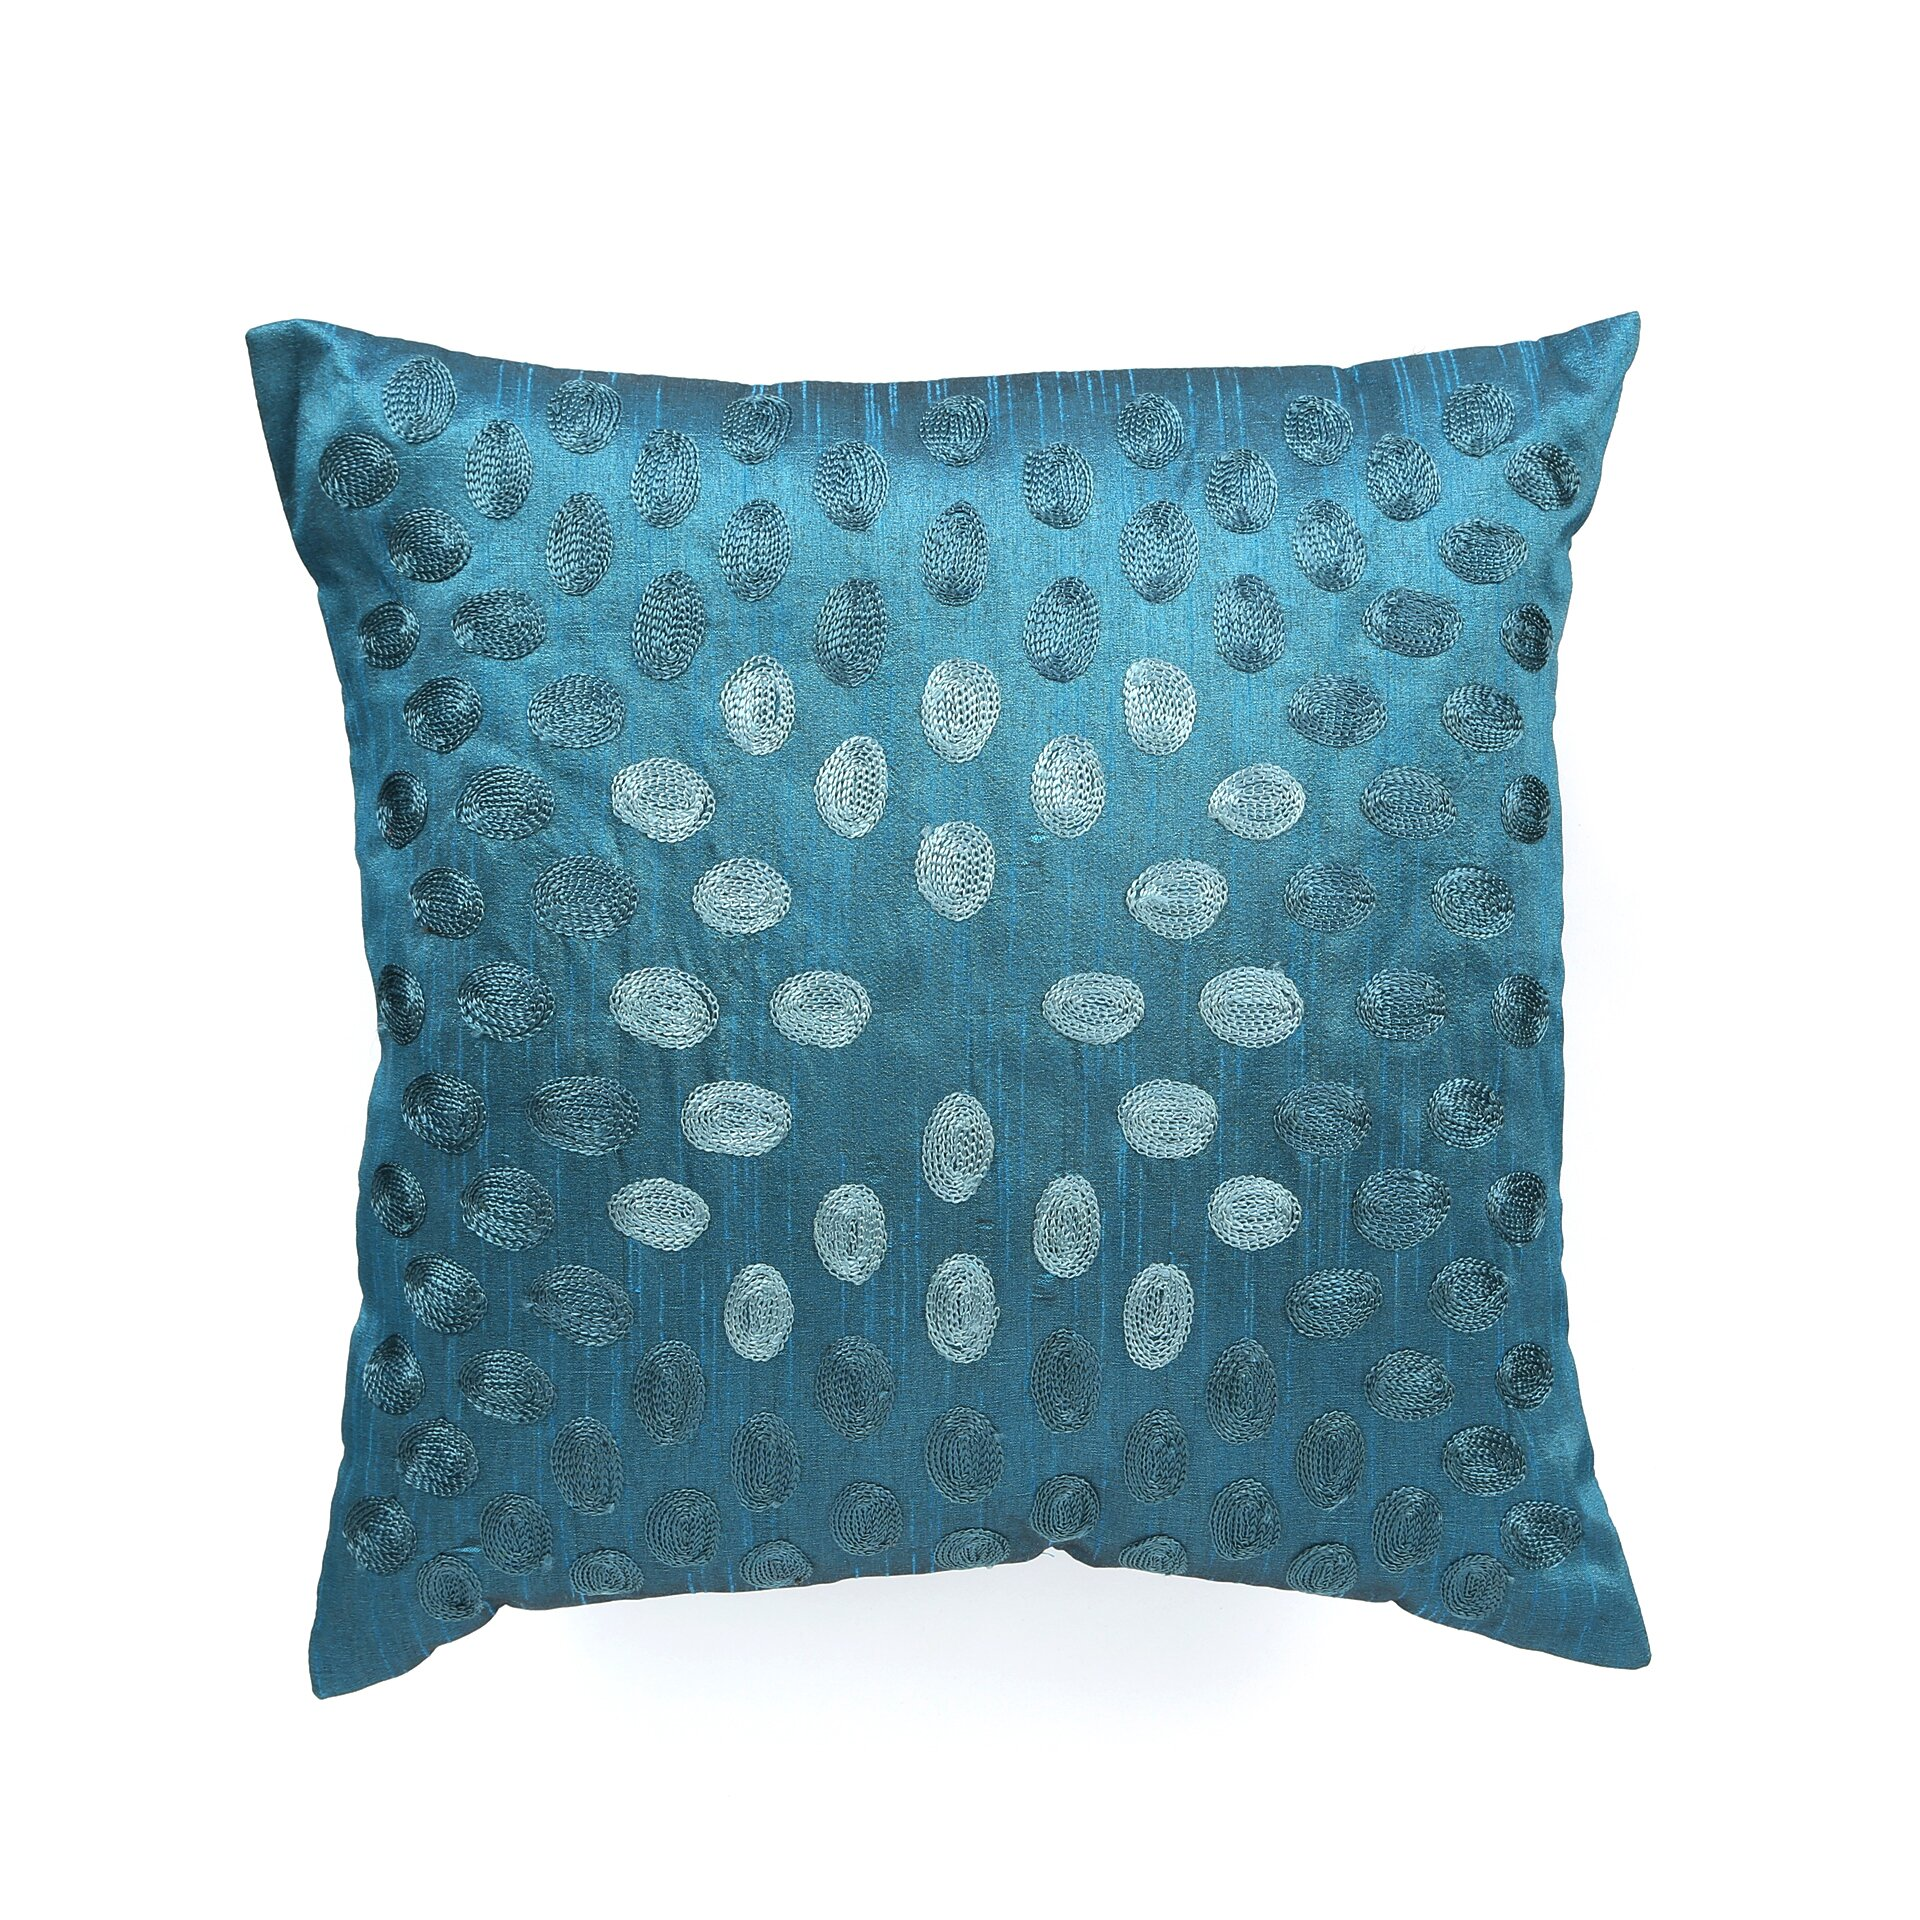 Wayfair Blue Decorative Pillows : Wildon Home Throw Pillow & Reviews Wayfair